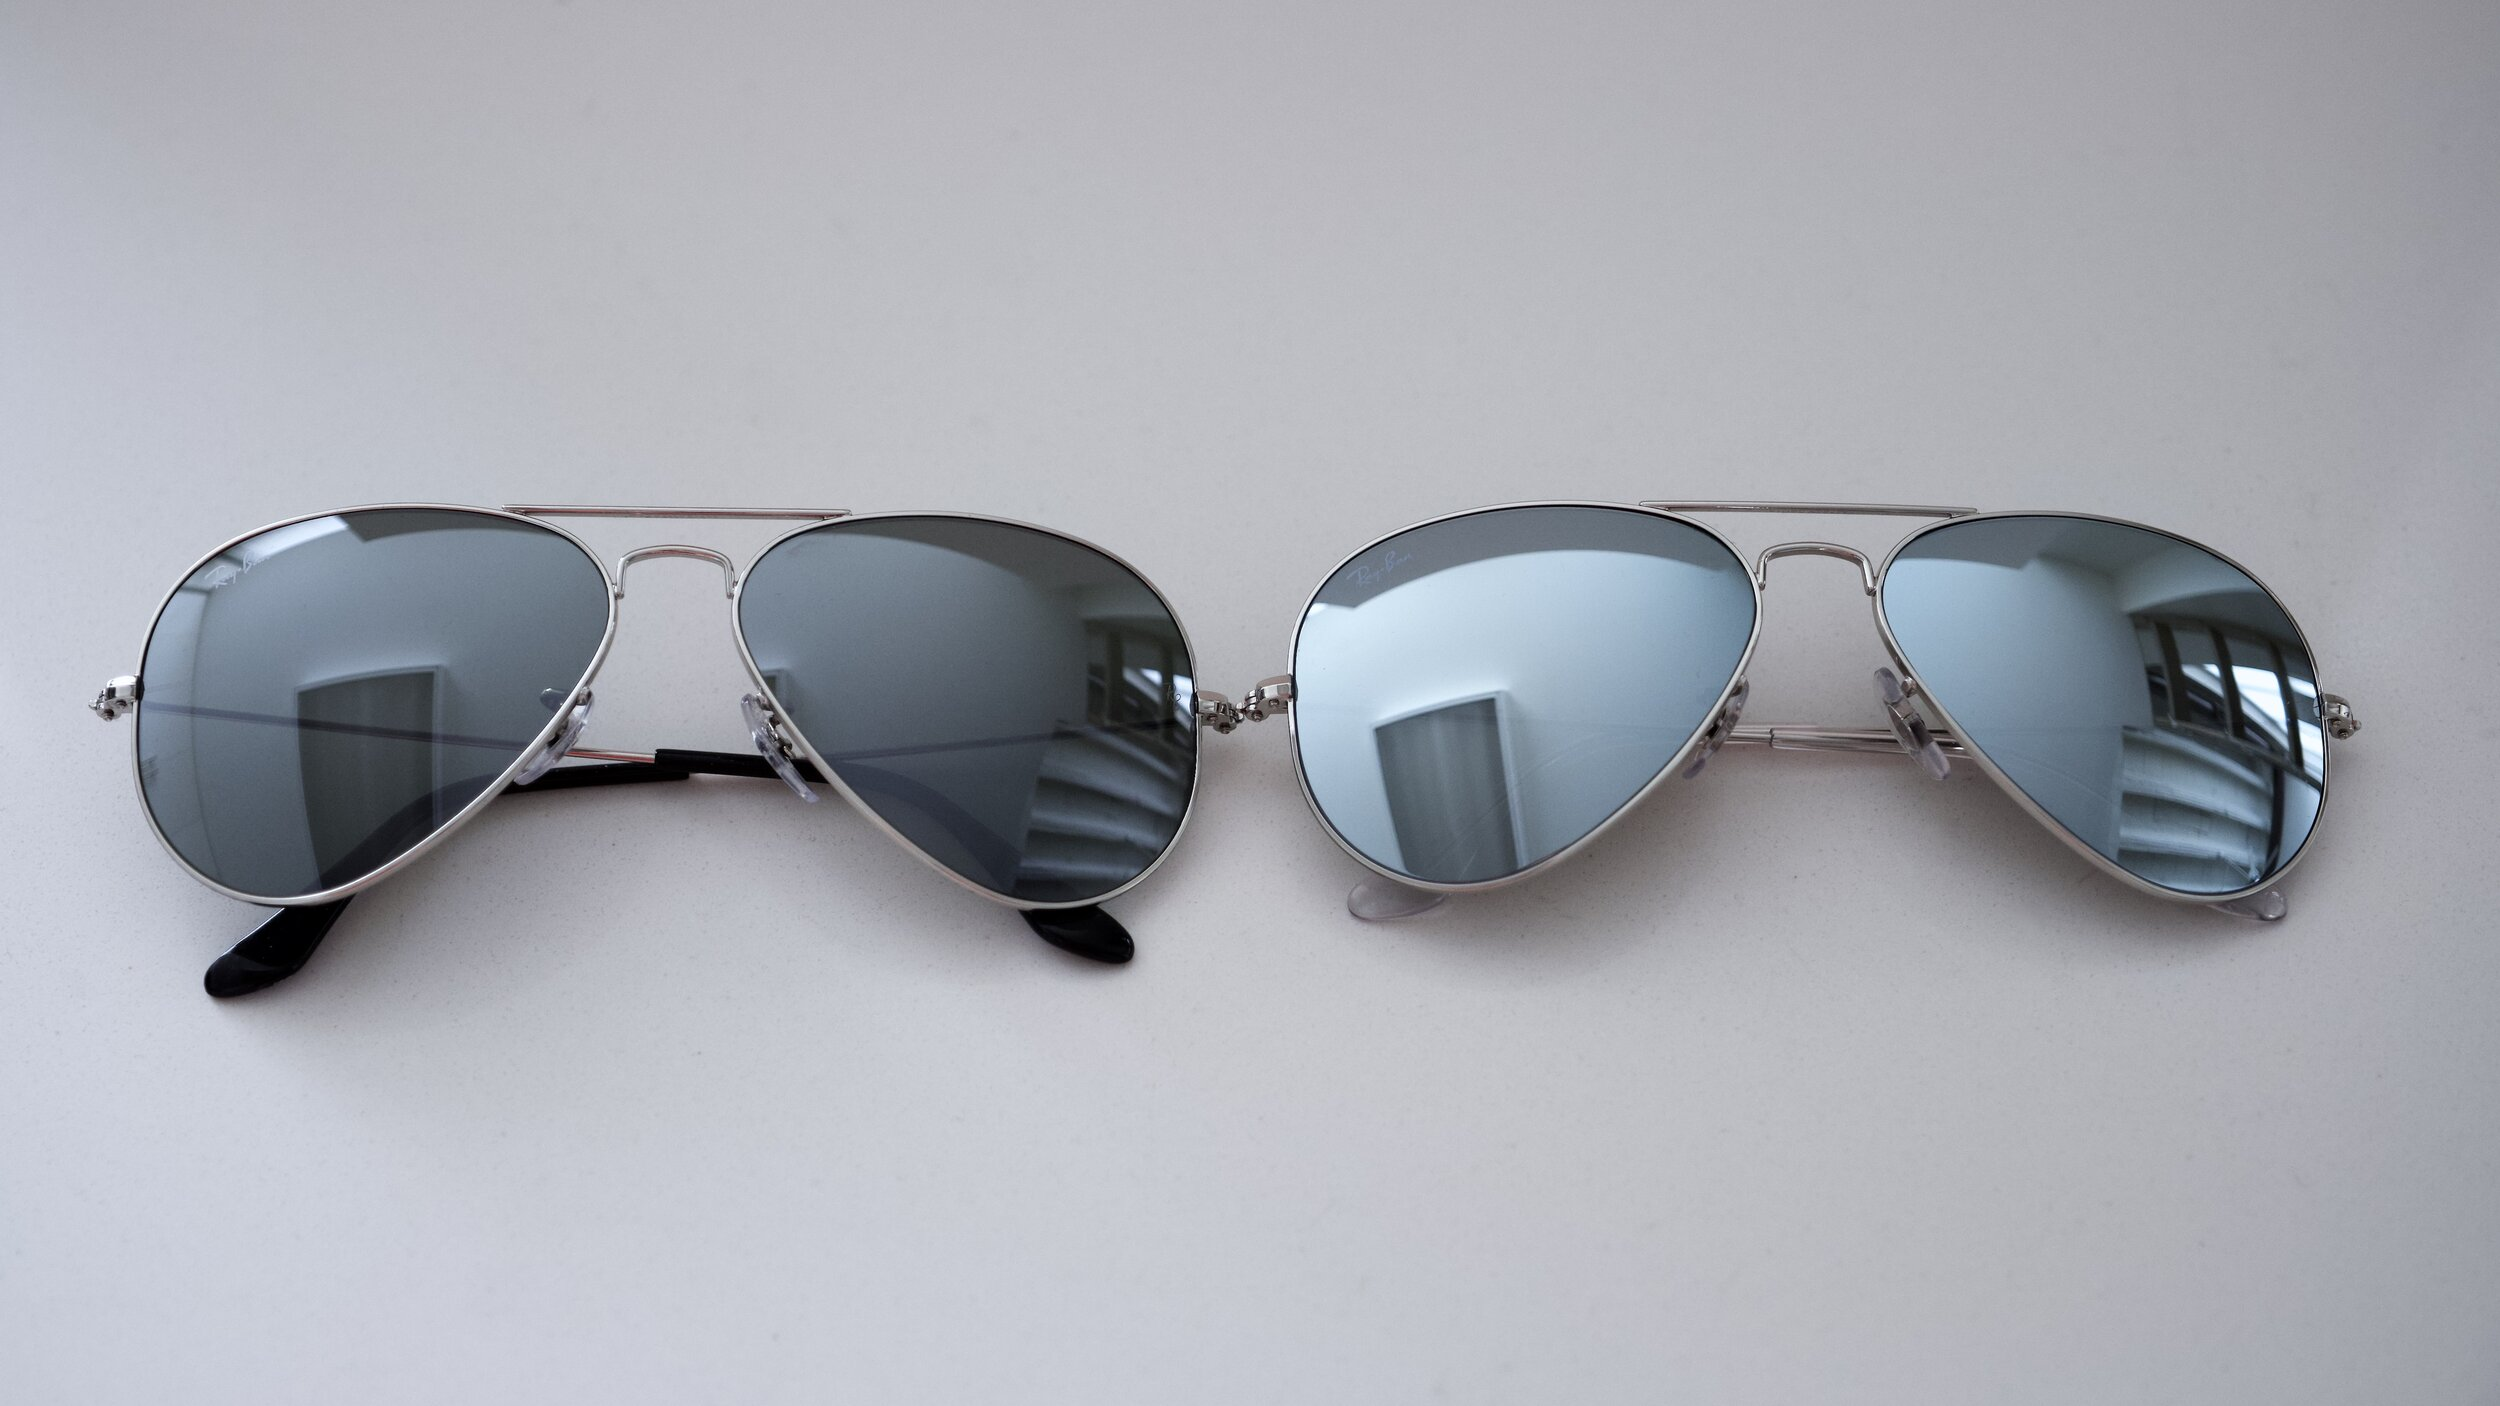 ray ban miroir cheaper than retail price buy clothing accessories and lifestyle products for women men